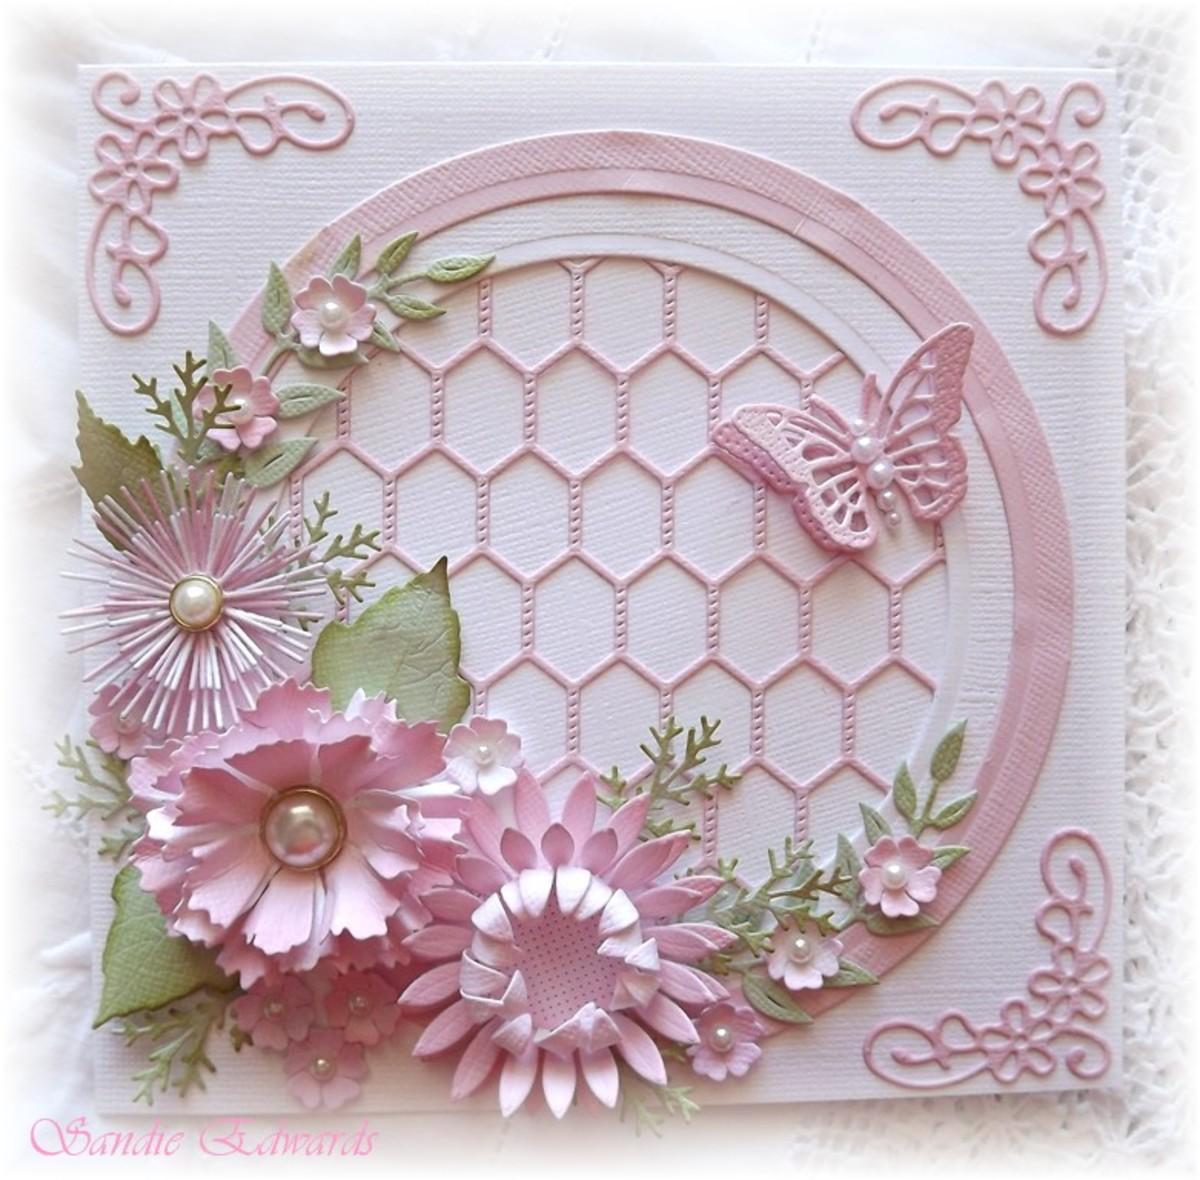 Flowers made with dies are such a rewarding craft. You can use them on cards, scrapbook pages and stand alone flowers.